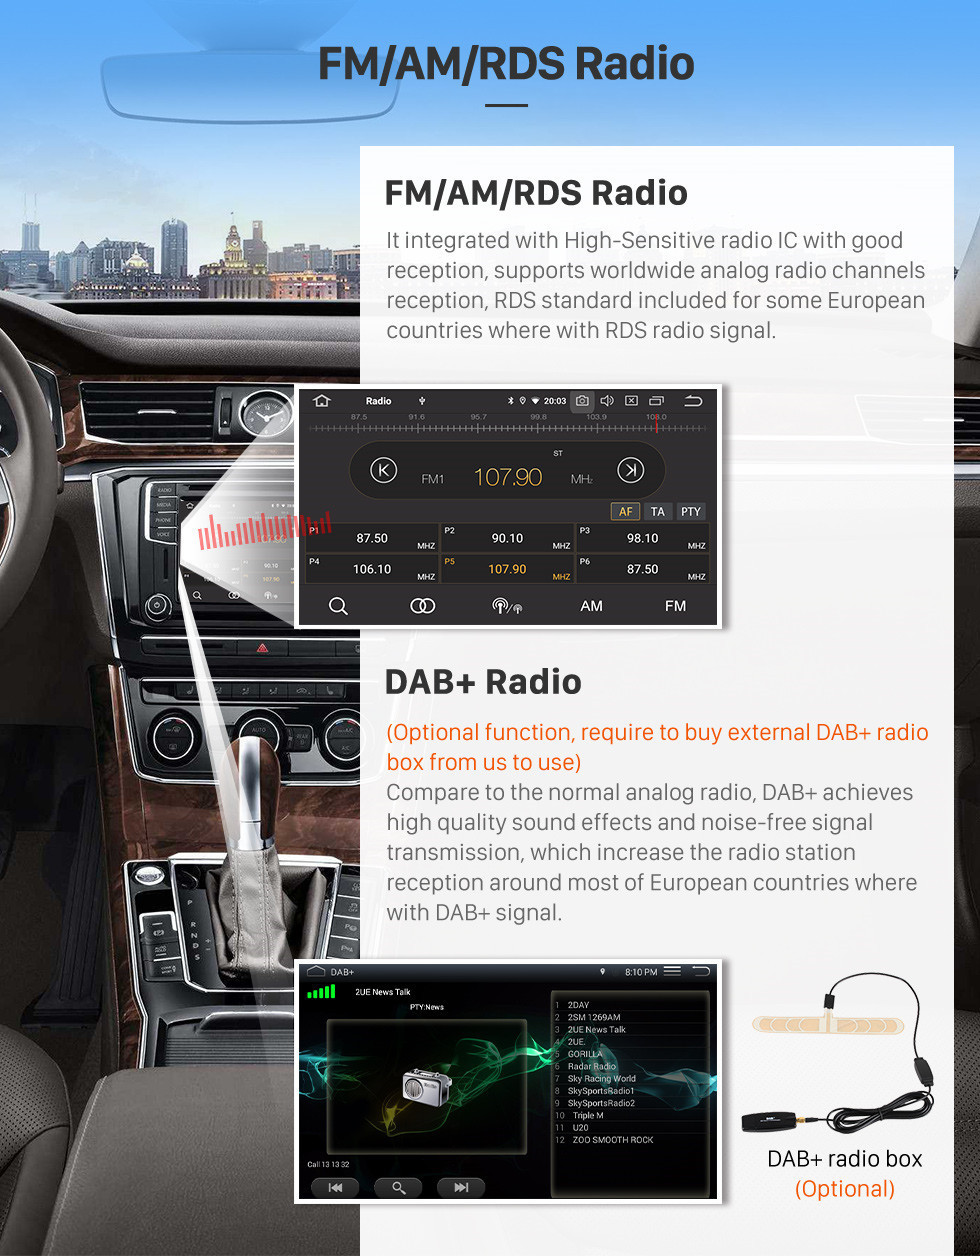 Seicane HD Touchscreen 7 inch Android 10.0 GPS Navigation Radio for 2005-2012 Mercedes Benz ML CLASS W164 ML350 ML430 ML450 ML500 with Carplay Bluetooth support DAB+